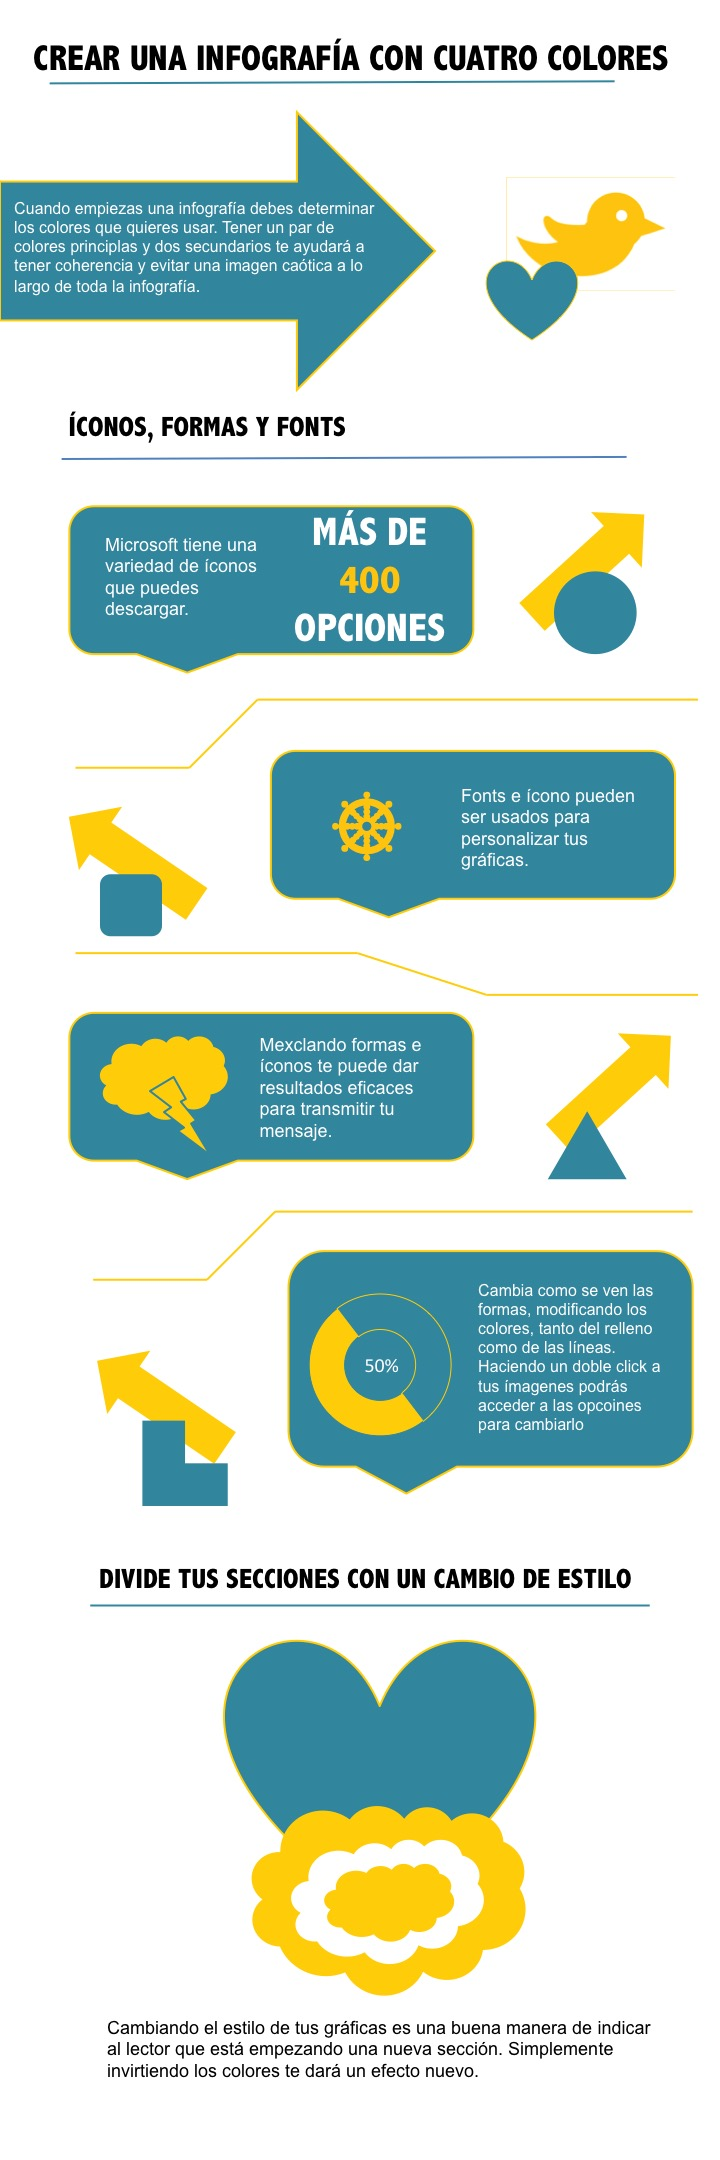 7 plantillas para hacer infografías sin Photoshop ⋆ Tuit Marketing